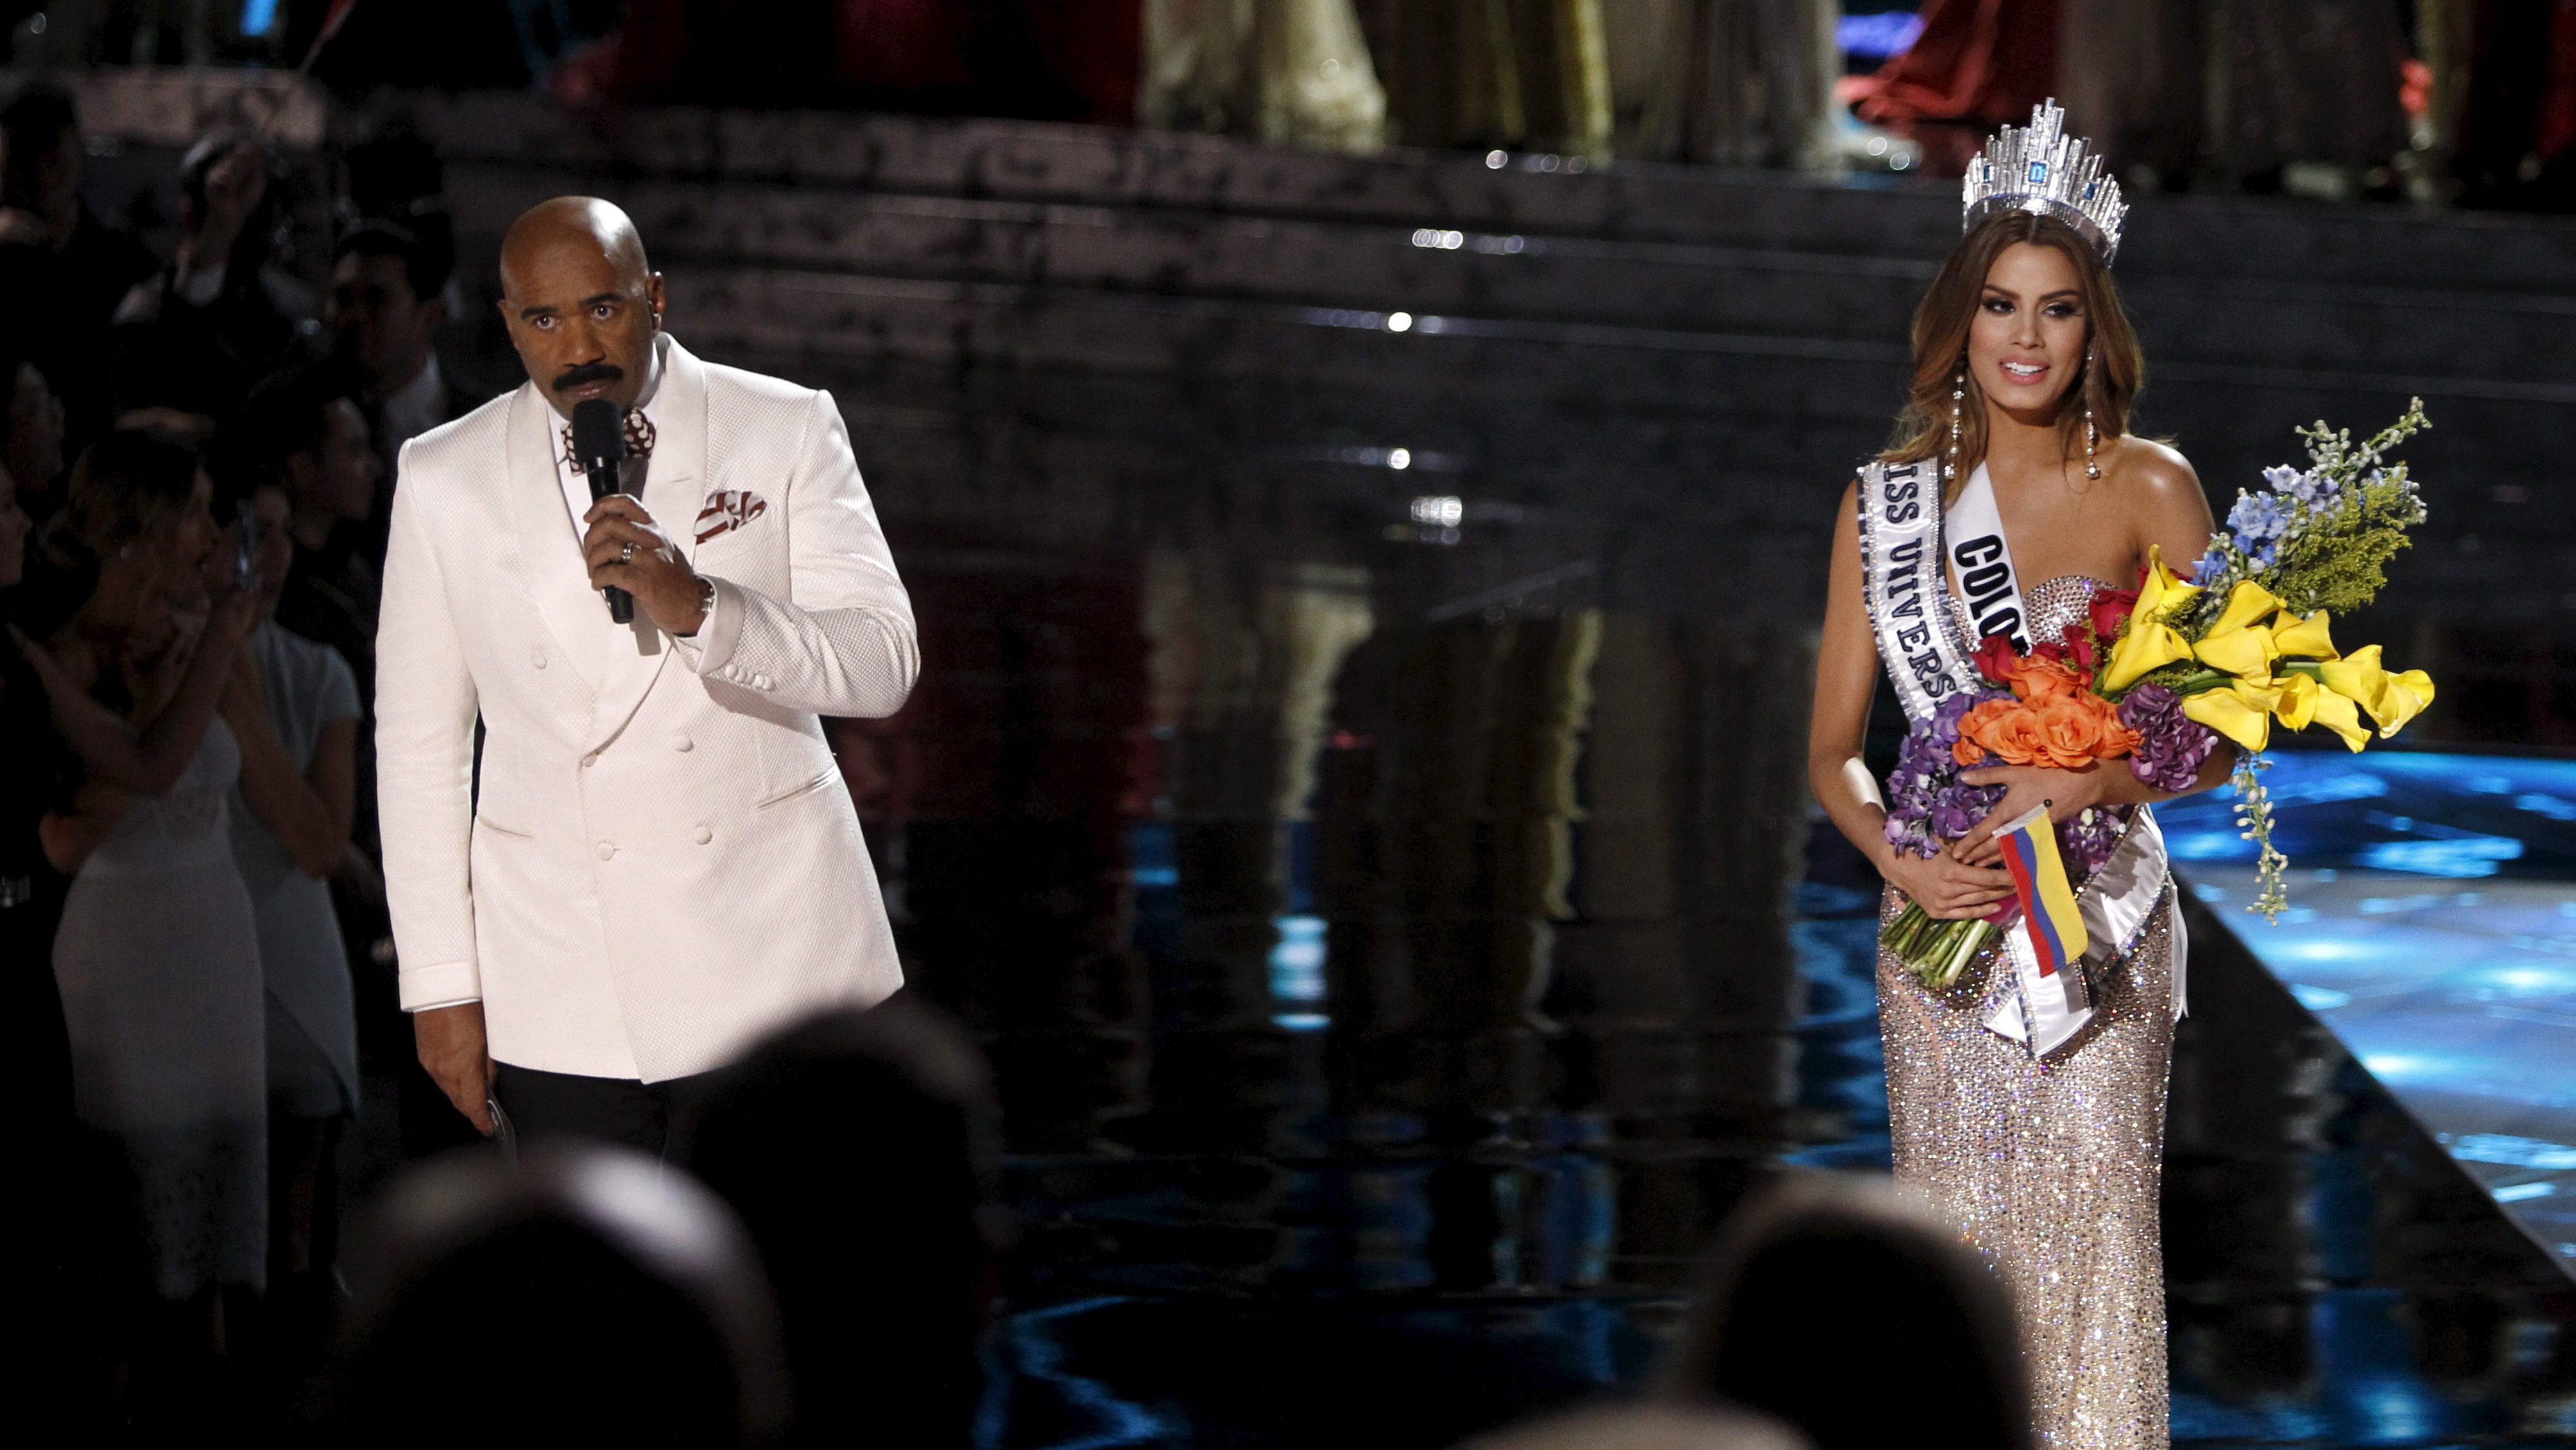 Host Steve Harvey (L) speaks to the audience after Miss Colombia Ariadna Gutierrez (R) was crowned Miss Universe during the 2015 Miss Universe Pageant in Las Vegas, Nevada, December 20, 2015. Harvey said he made a mistake when reading the card. Miss Philippines Pia Alonzo Wurtzbach is the actual winner.